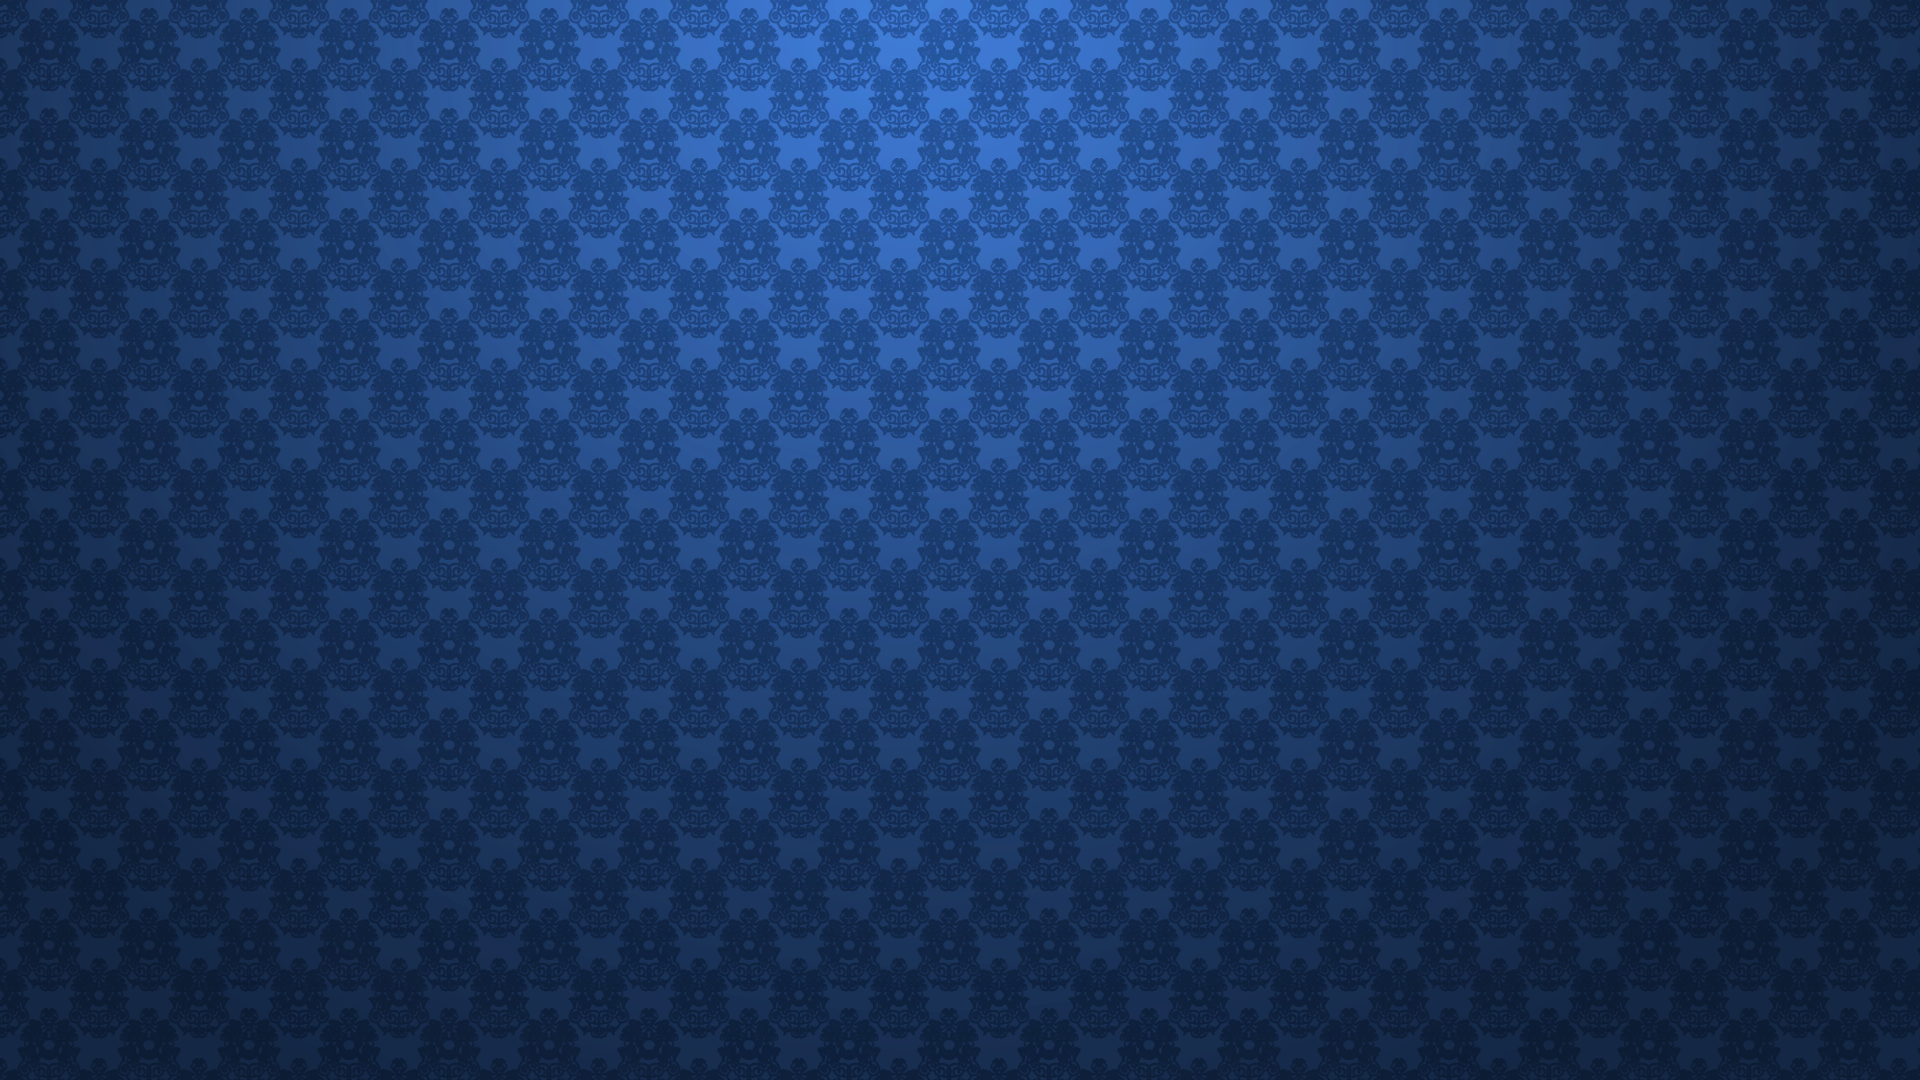 Download Royal Blue HD Wallpaper Gallery